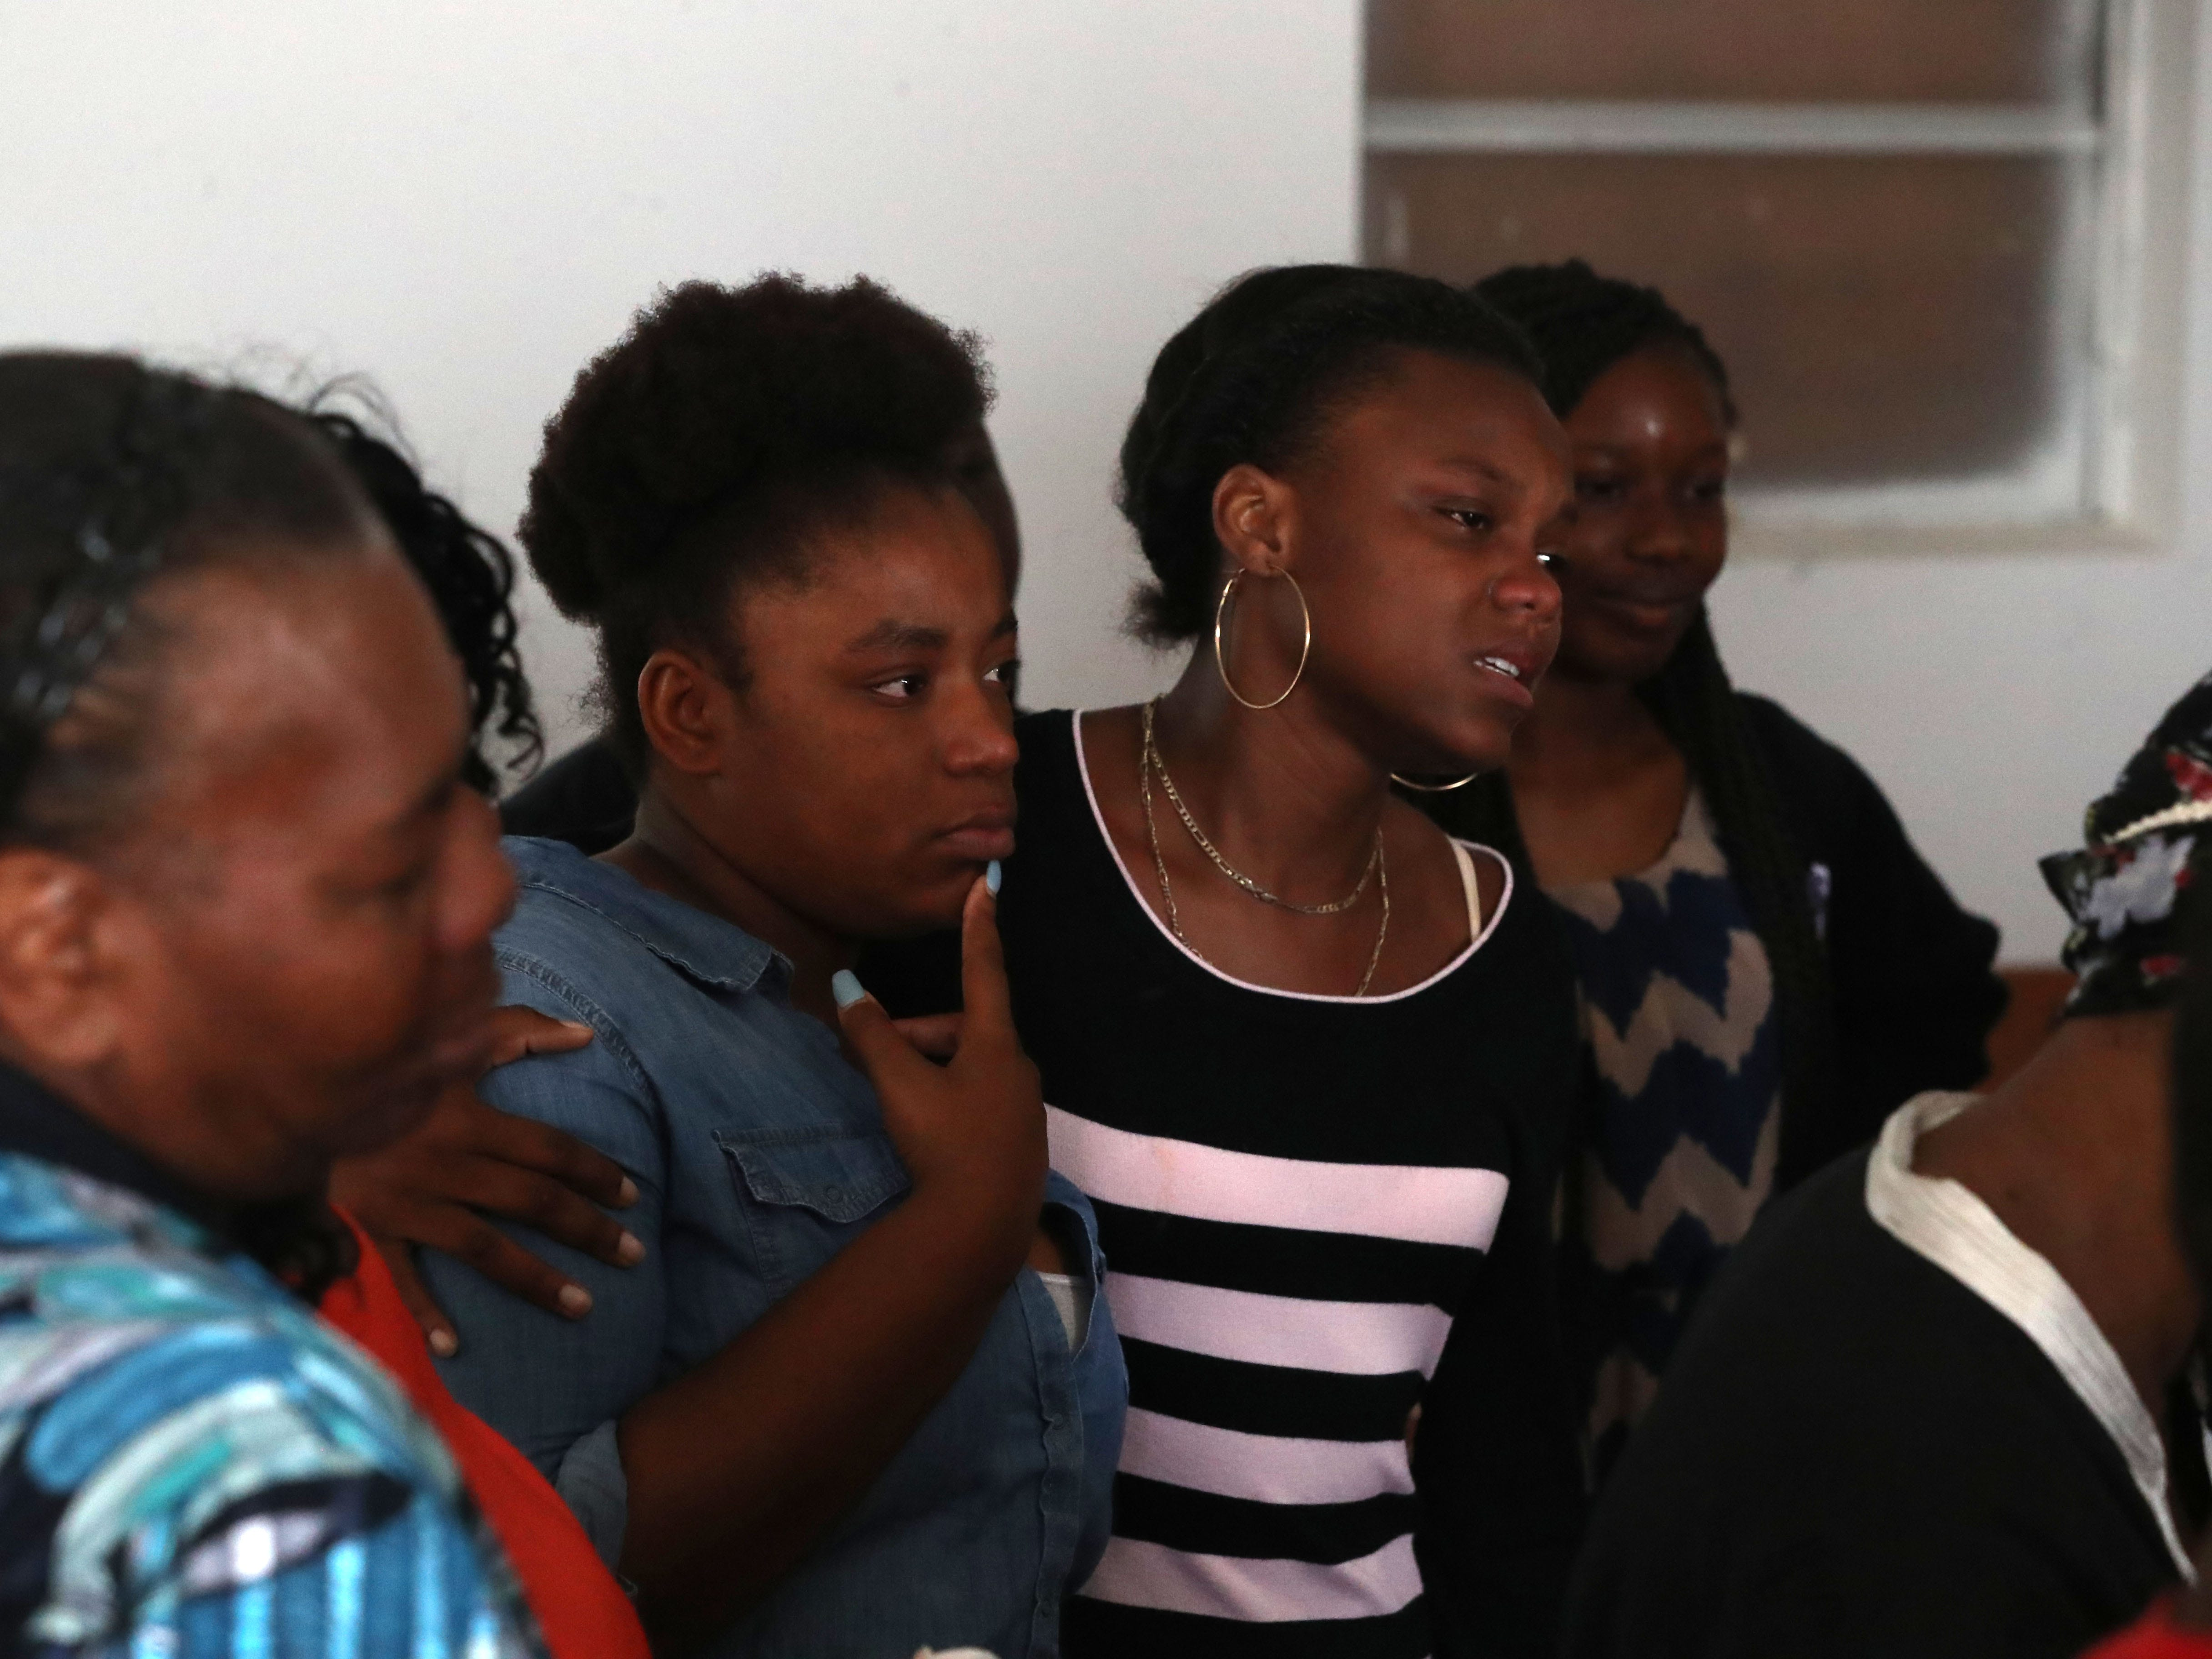 Many friends and family members of Demashell Bass, a woman who could not receive medical attention and died during the hurricane, mourn her loss at the Dream, Vision, and Destiny (DVD) Ministry in Gretna, Fla., on Sunday Oct. 14, 2018, after Hurricane Michael hits the Florida panhandle.